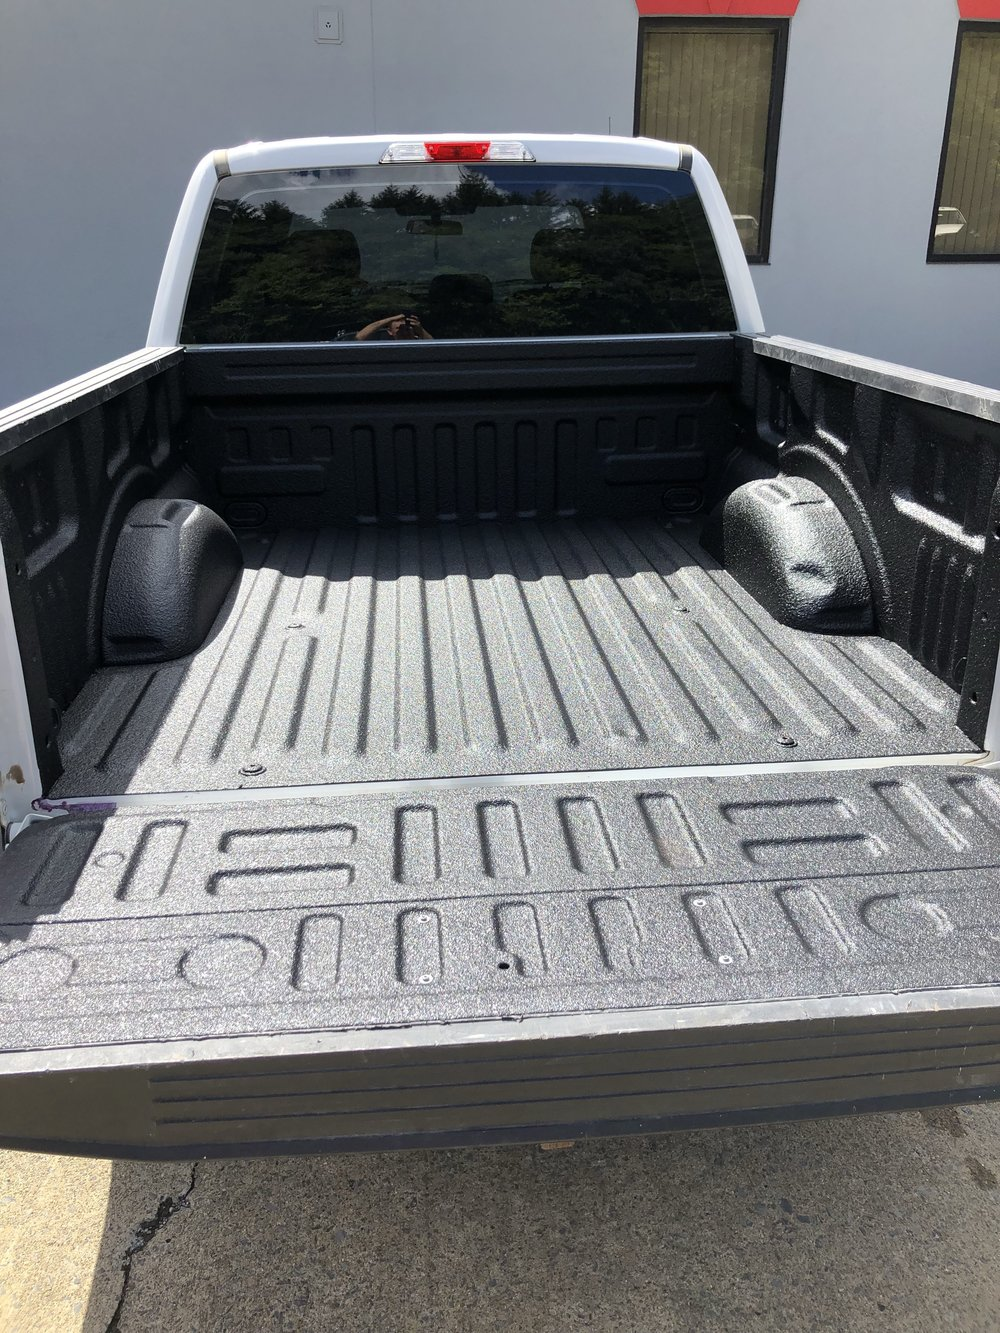 Final - Completed Vortex bed liner.  Call today to schedule your appointment.  304-255-1441